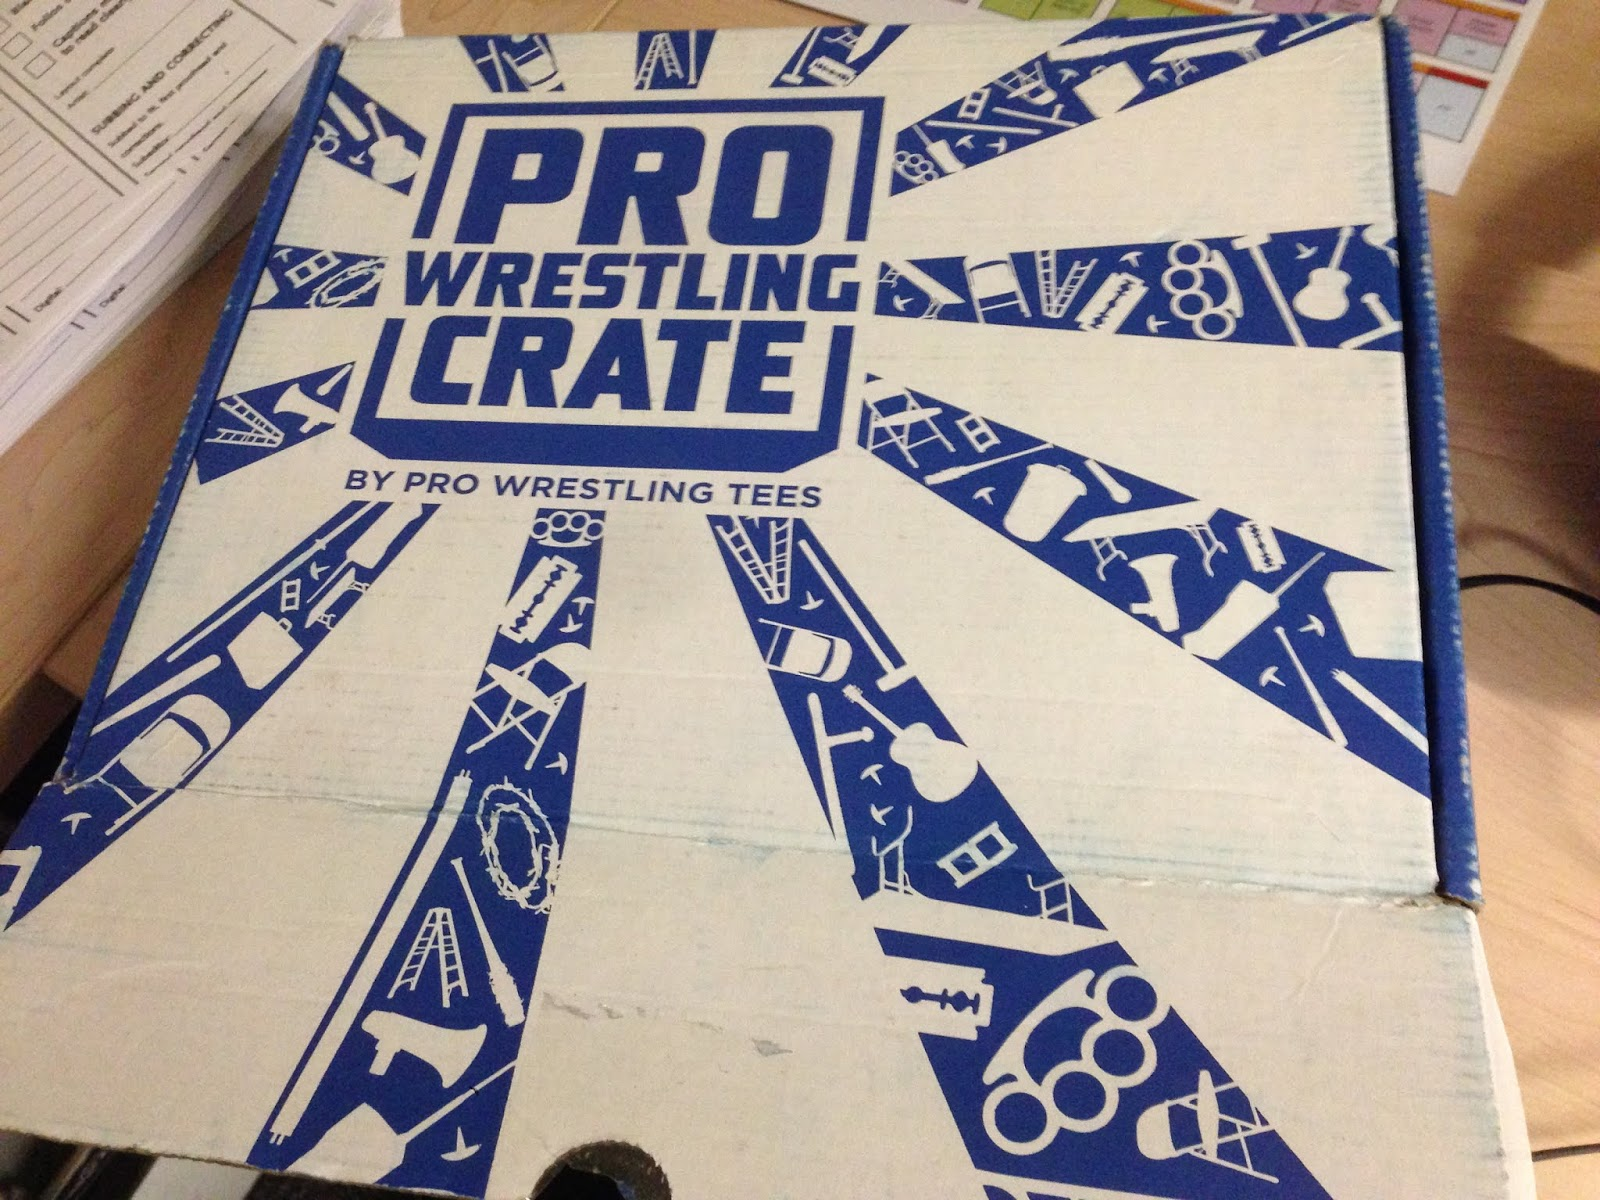 08b77ed3c03f Pro Wrestling Crate for May 2018  The Unboxing